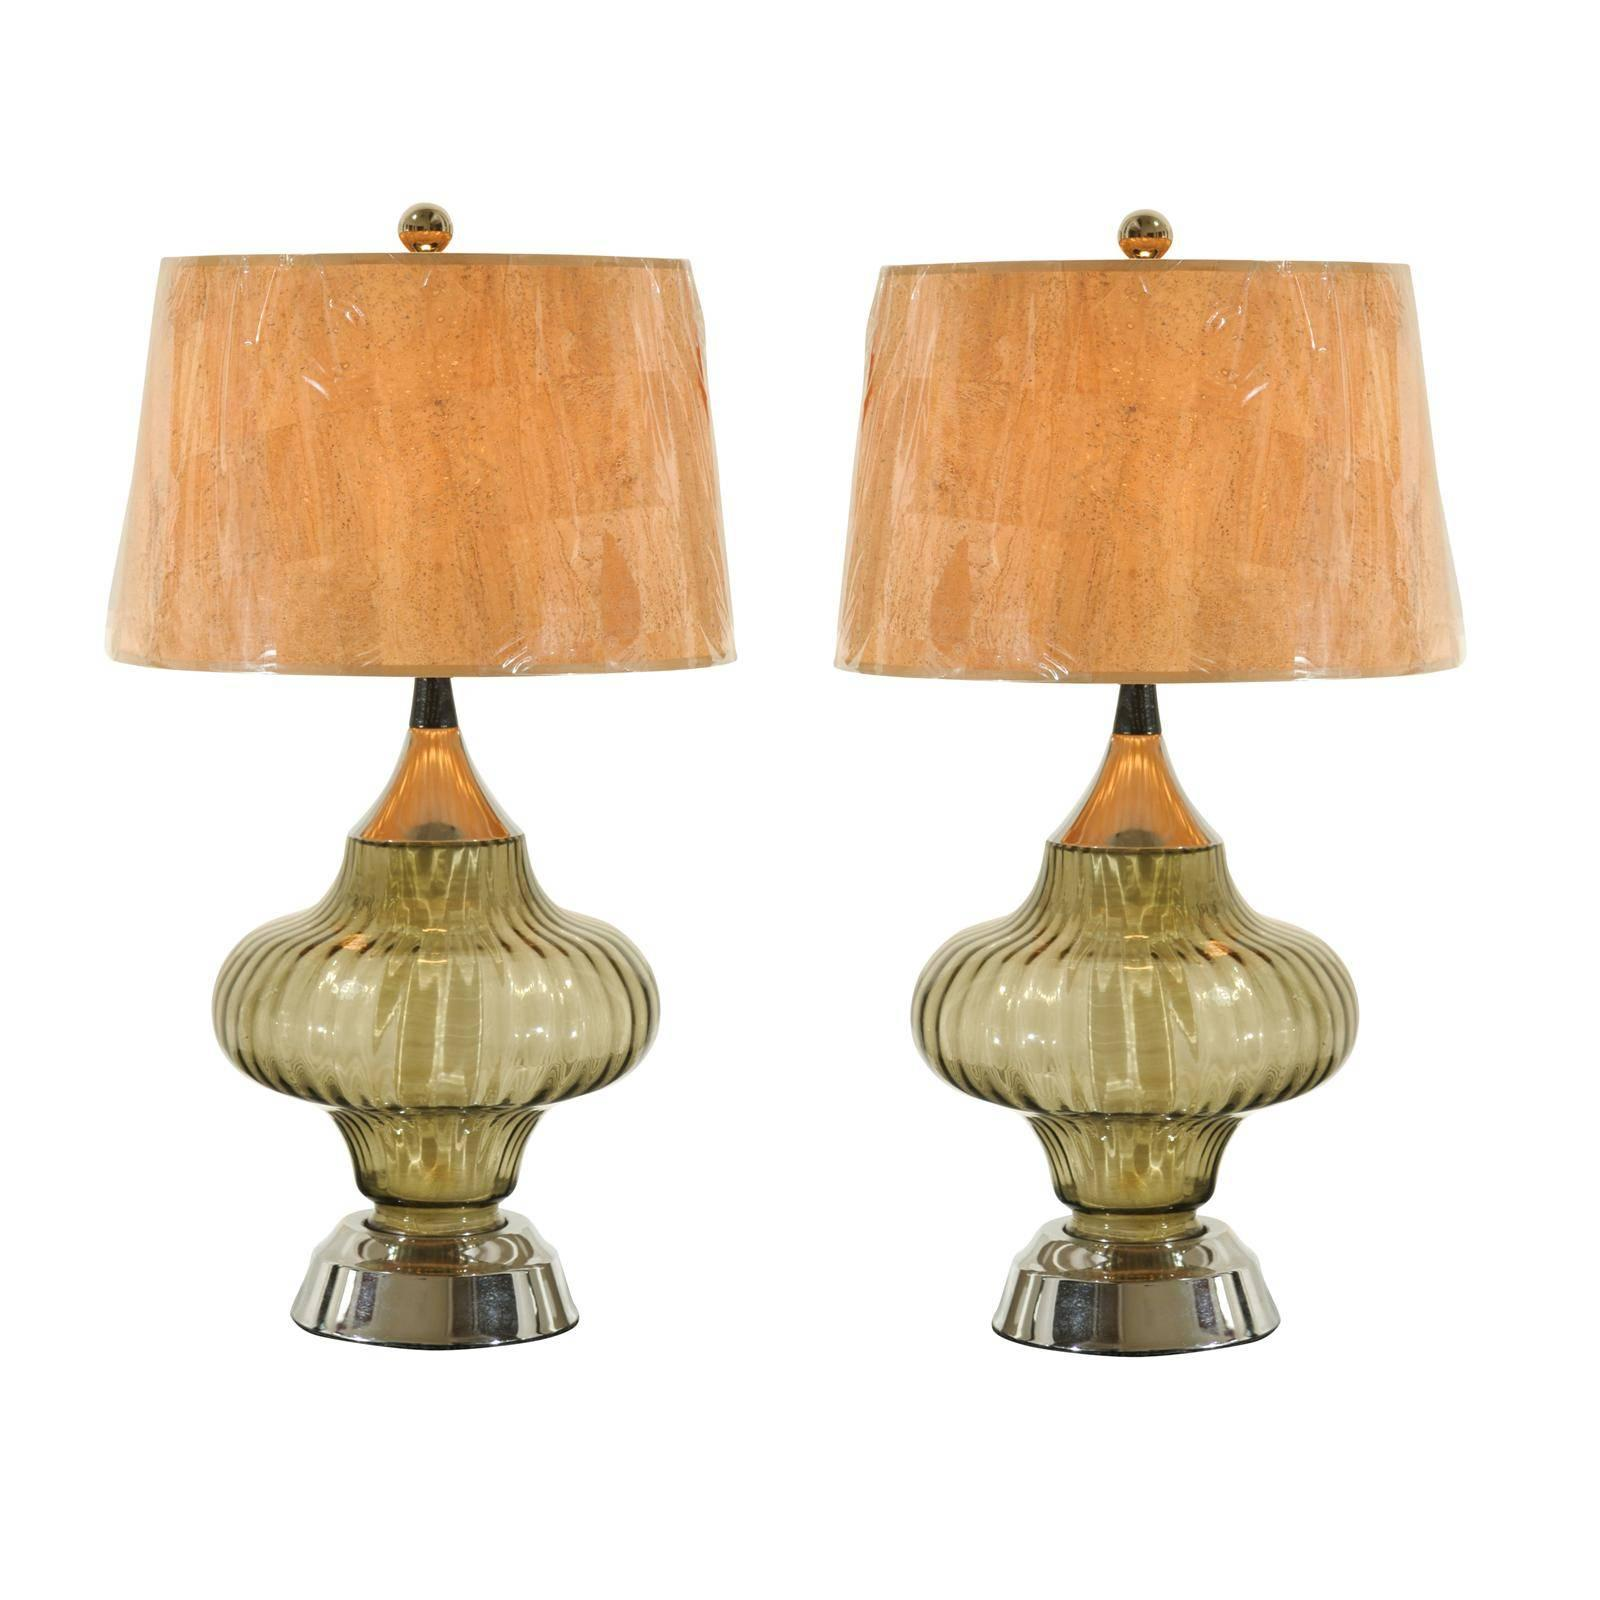 Restored Pair of Vintage Smoked Glass and Chrome Lamps